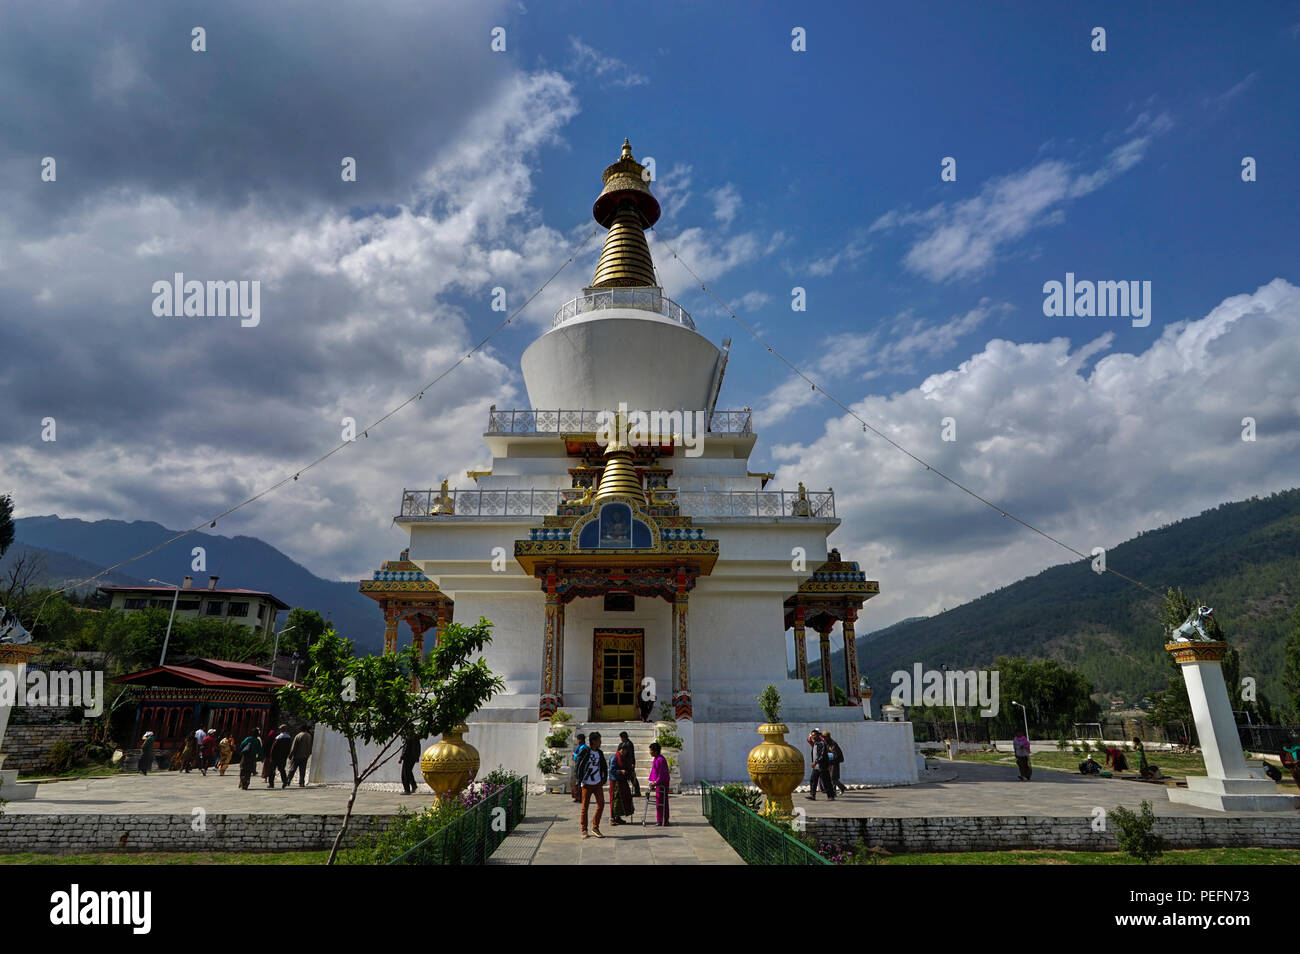 Beautiful view of Buddhism religion with Dzongh and Tigers Nest on a sunny day. Photo taken in Bhutan and showing unique culture and religion. Stock Photo